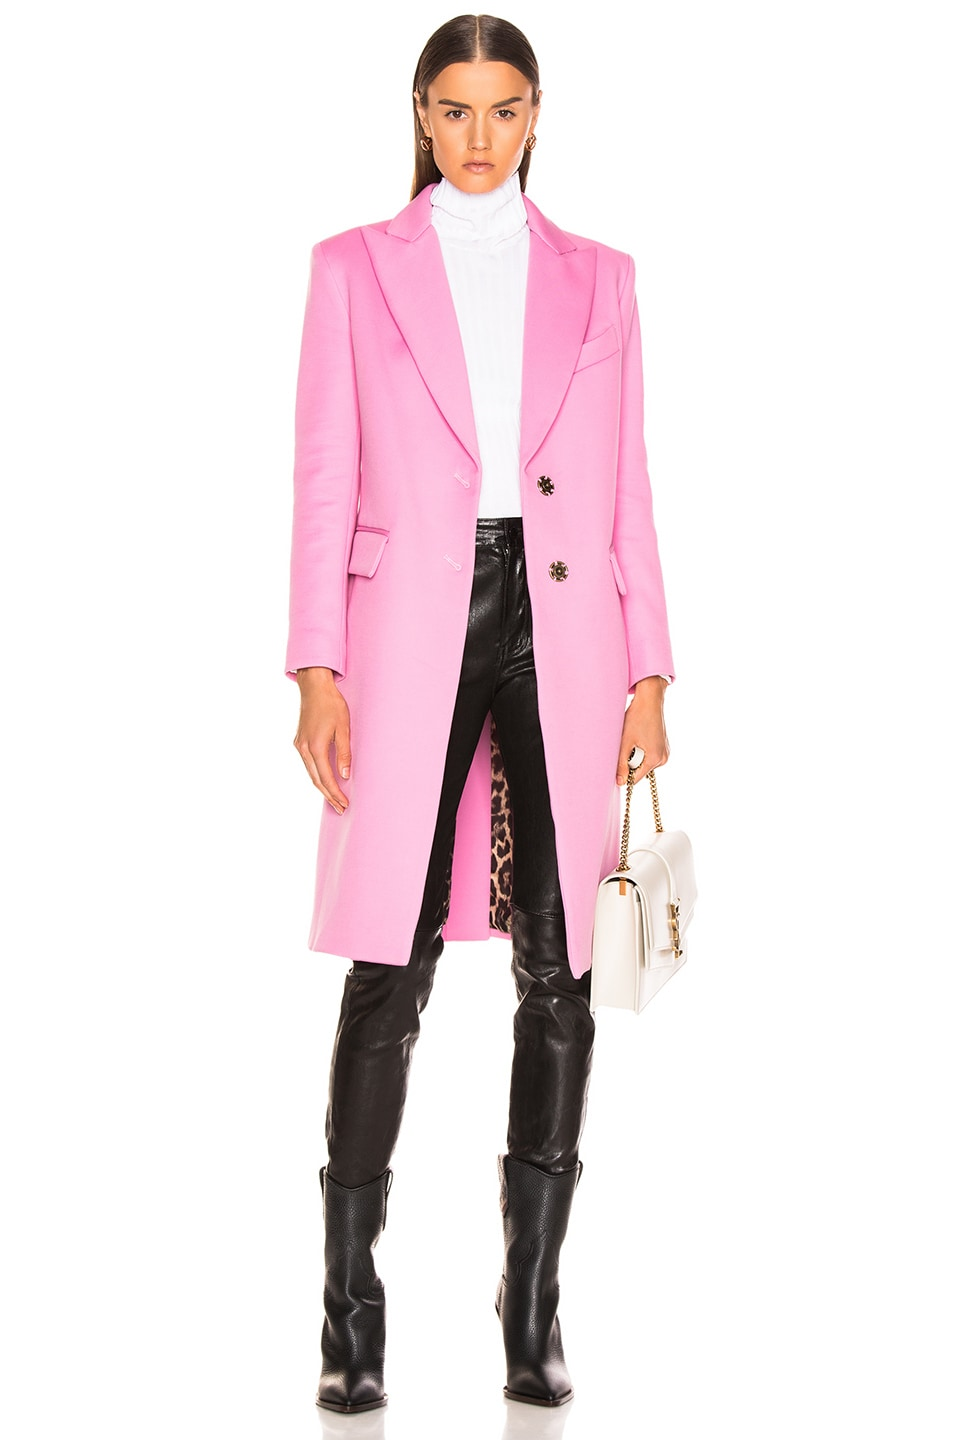 Image 1 of Smythe Peaked Lapel Overcoat in Extra Pink with Leopard Lining